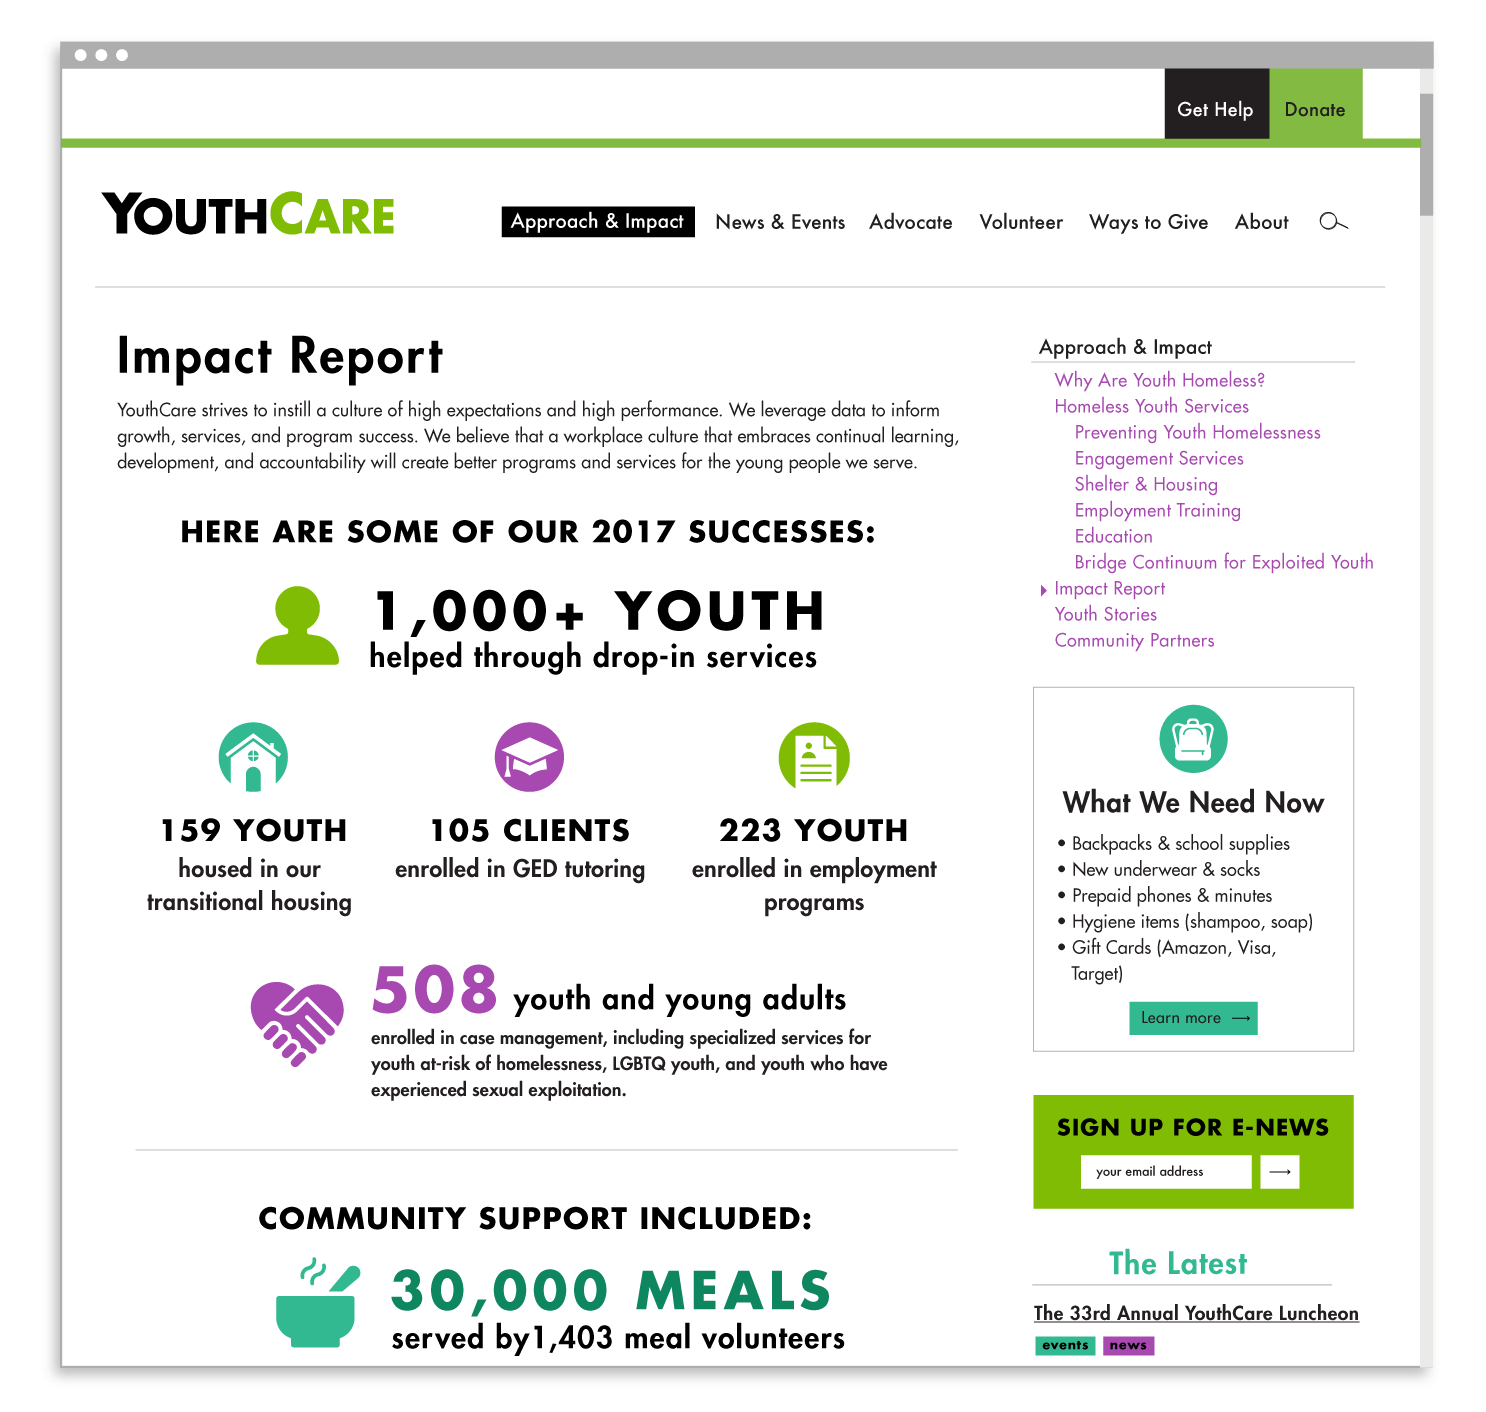 Kat-Marshello-YouthCare-Website-Design-ImpactReport.png